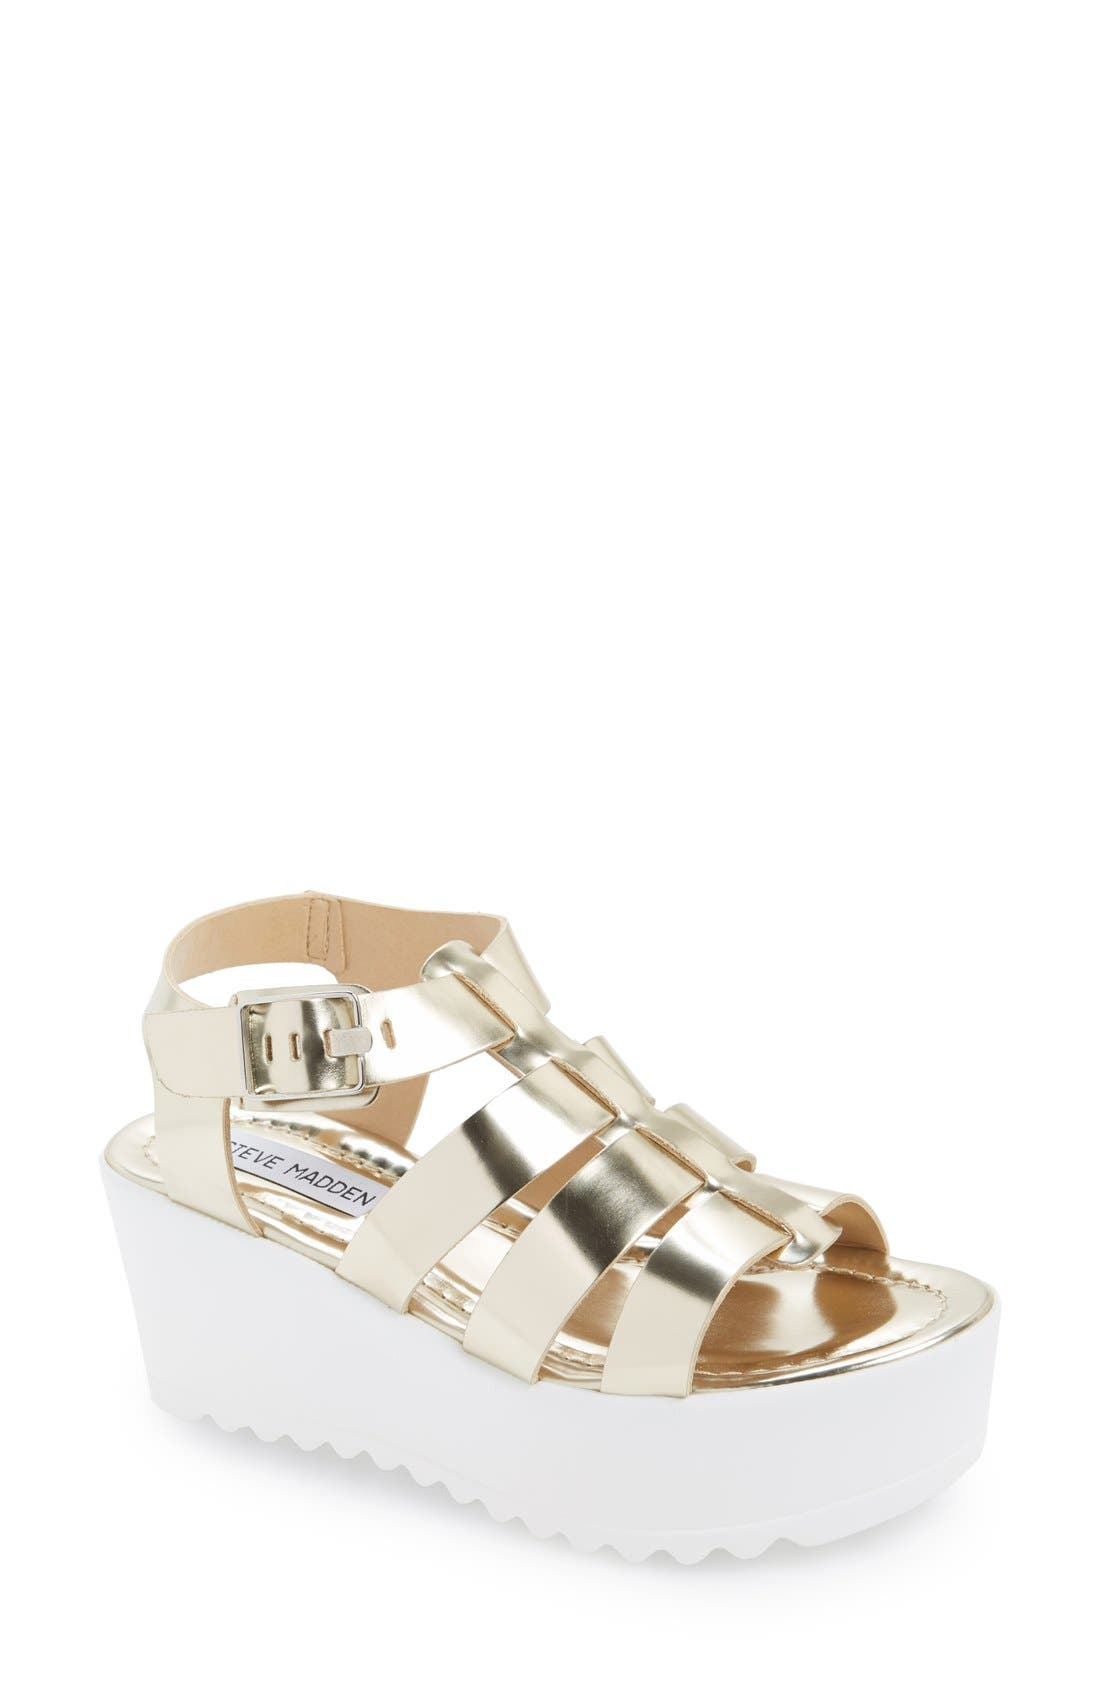 Alternate Image 1 Selected - Steve Madden 'Strangld' Gladiator Platform Sandal (Women)